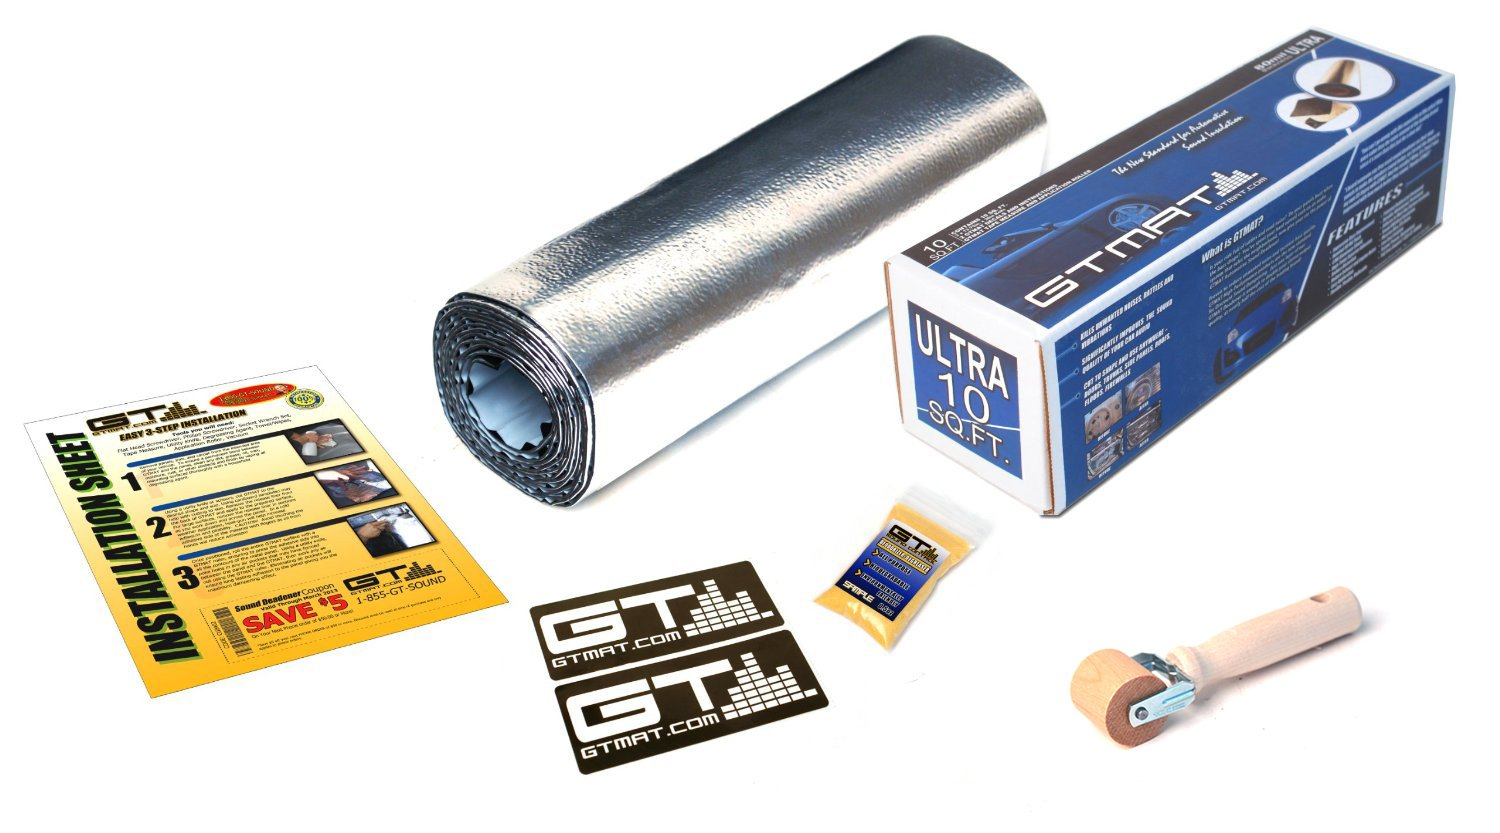 GTMAT 10 sqft Automotive Audio Dampening 80mil ULTRA - Noise Reduction Installation Kit Includes: 10sqft (qty 1 - 1ft X 10ft roll), Instruction Sheet, Application Roller, Degreaser, GT MAT Decals